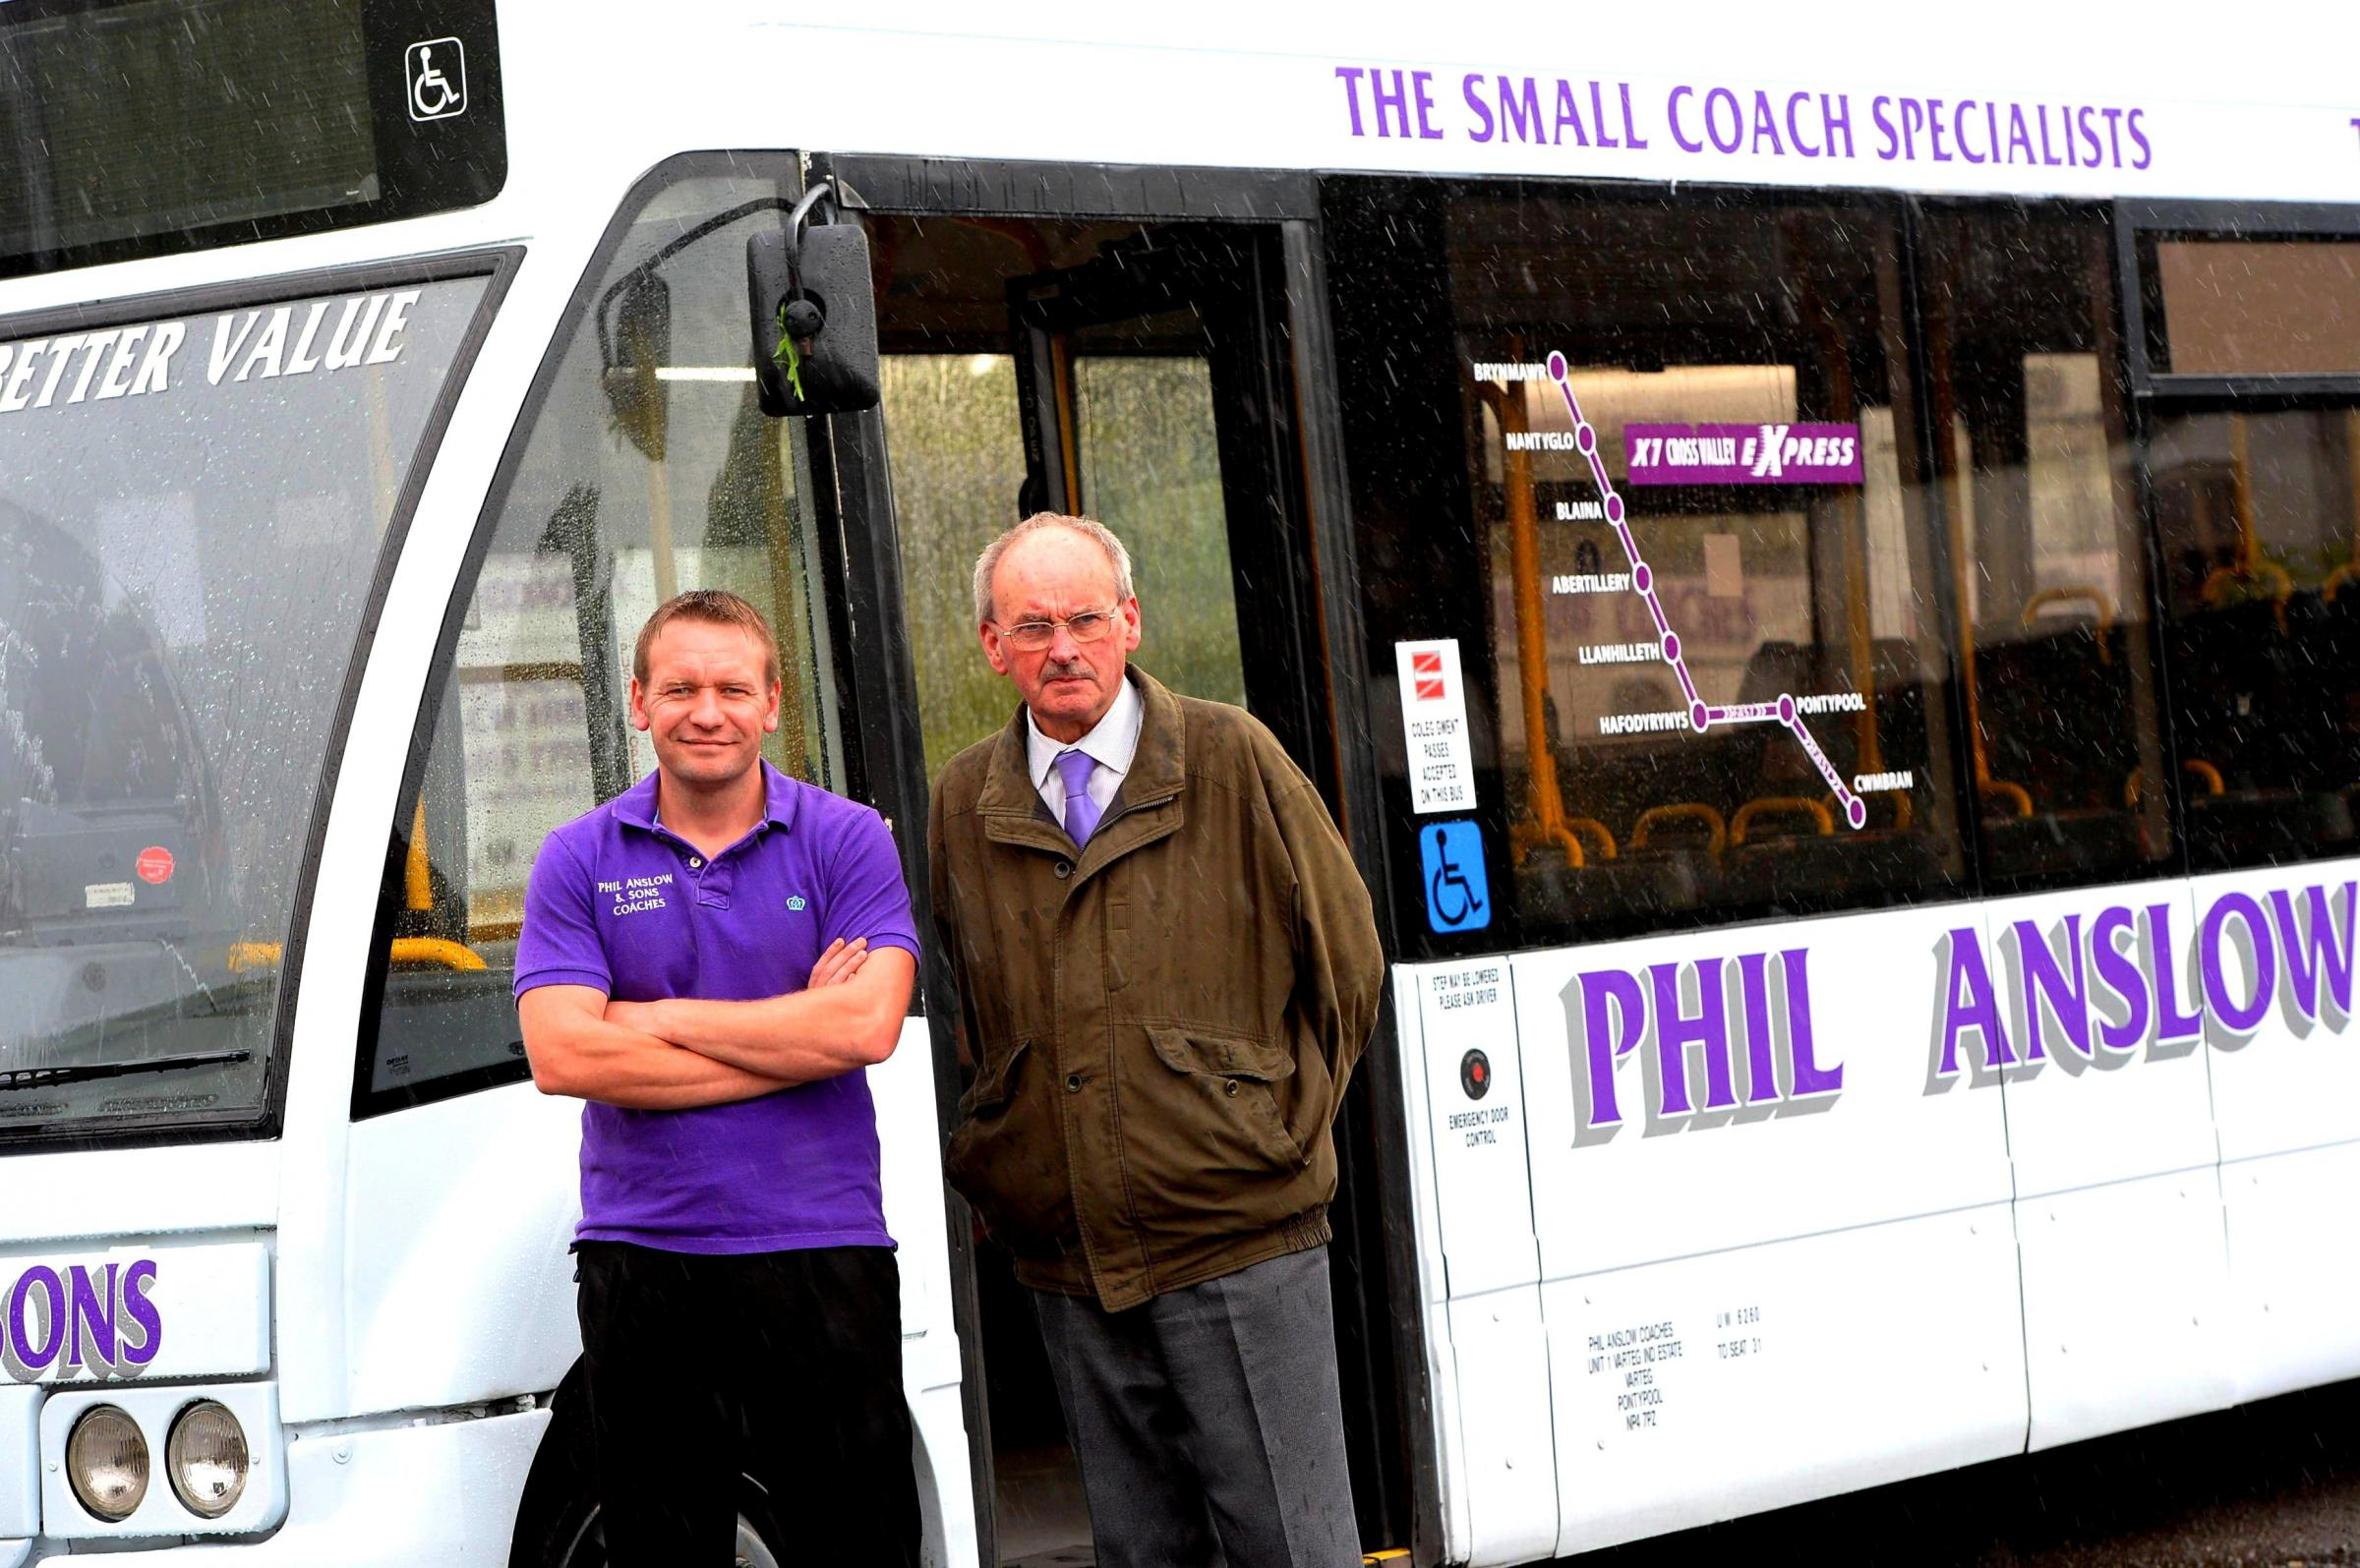 SMART SERVICE: Kevin Anslow, left, and operations manager Terry Wyburn at the bus depot in the Varteg. The Anslow bus service has taken over a route from Stagecoach, much to the relief of the residents